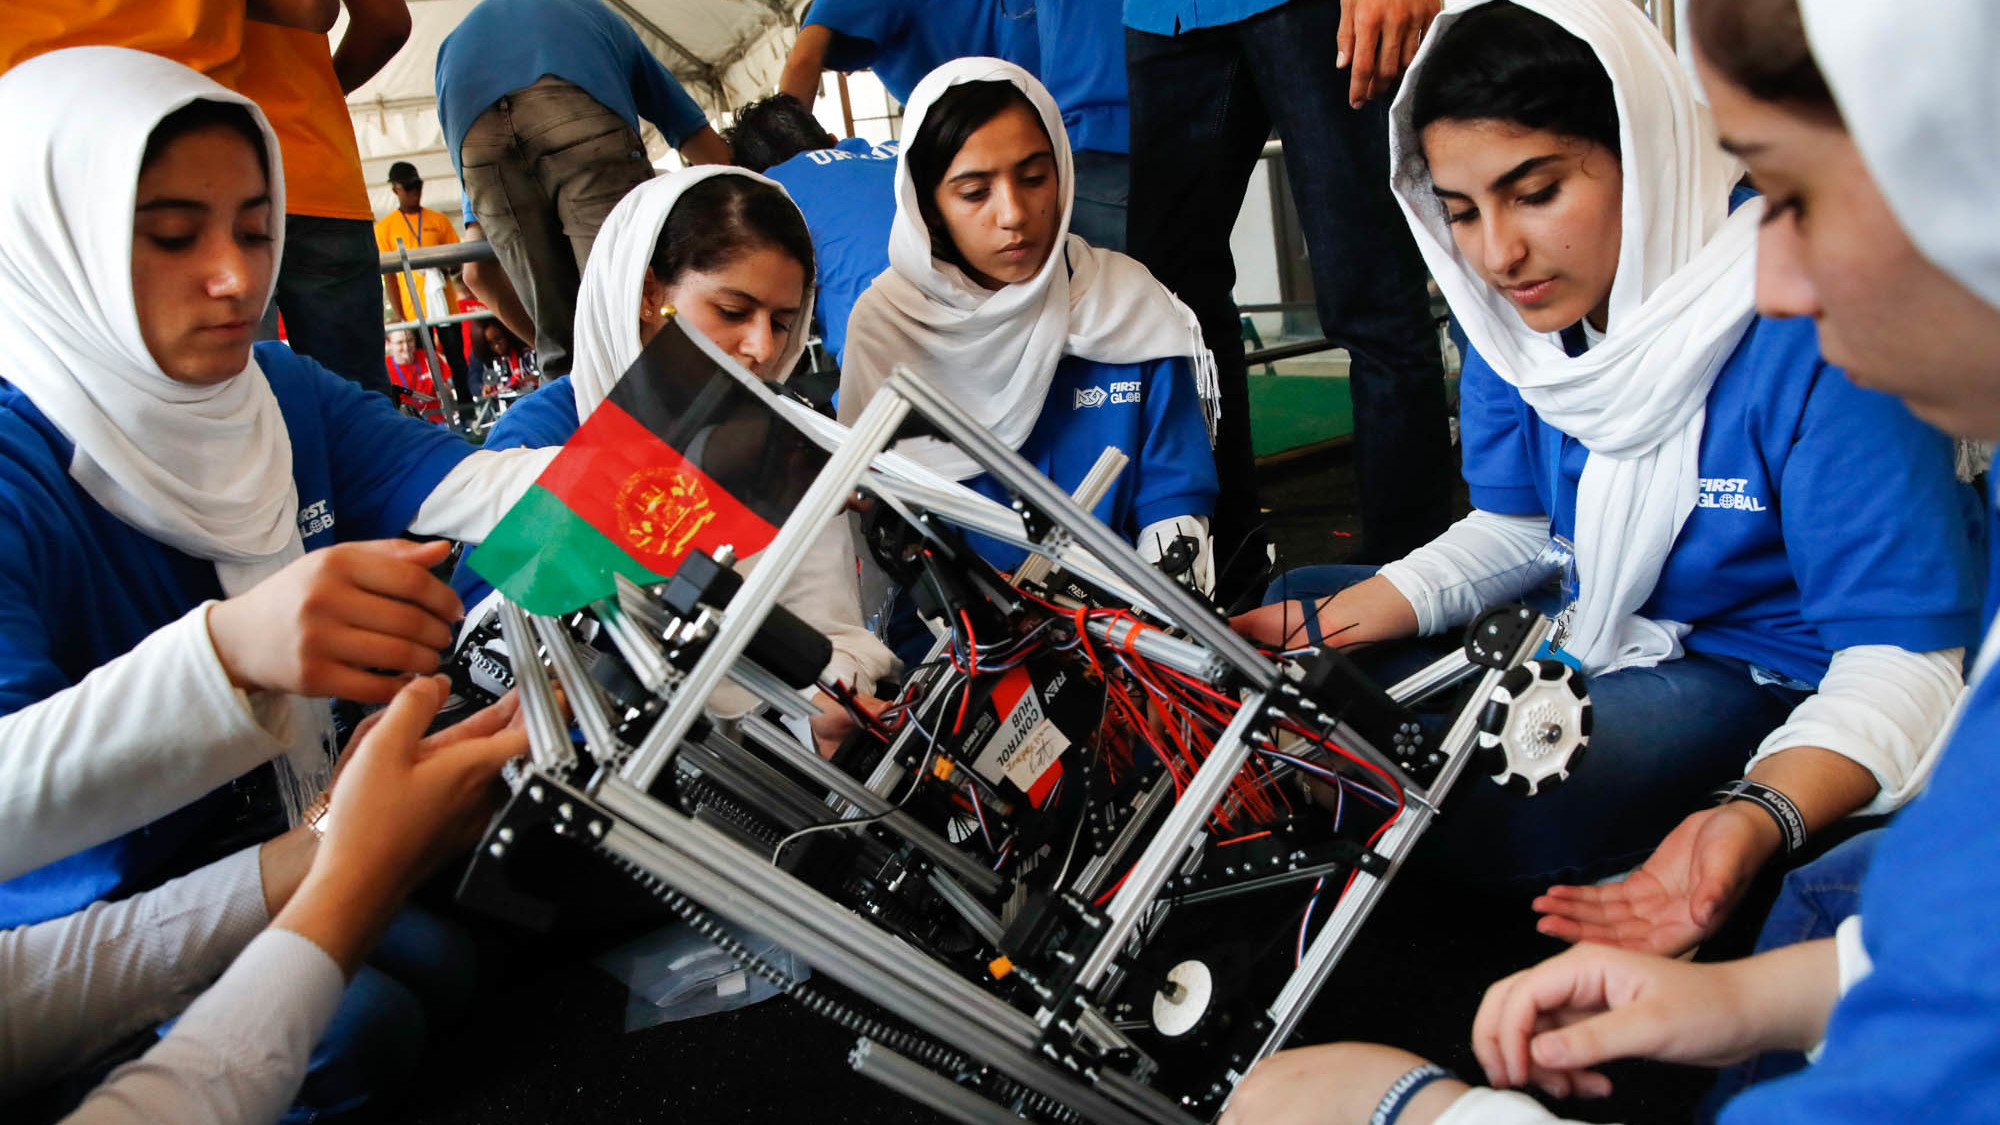 npr.org - How Did The Afghan All-Girl Team Do At The Robotics Competition?